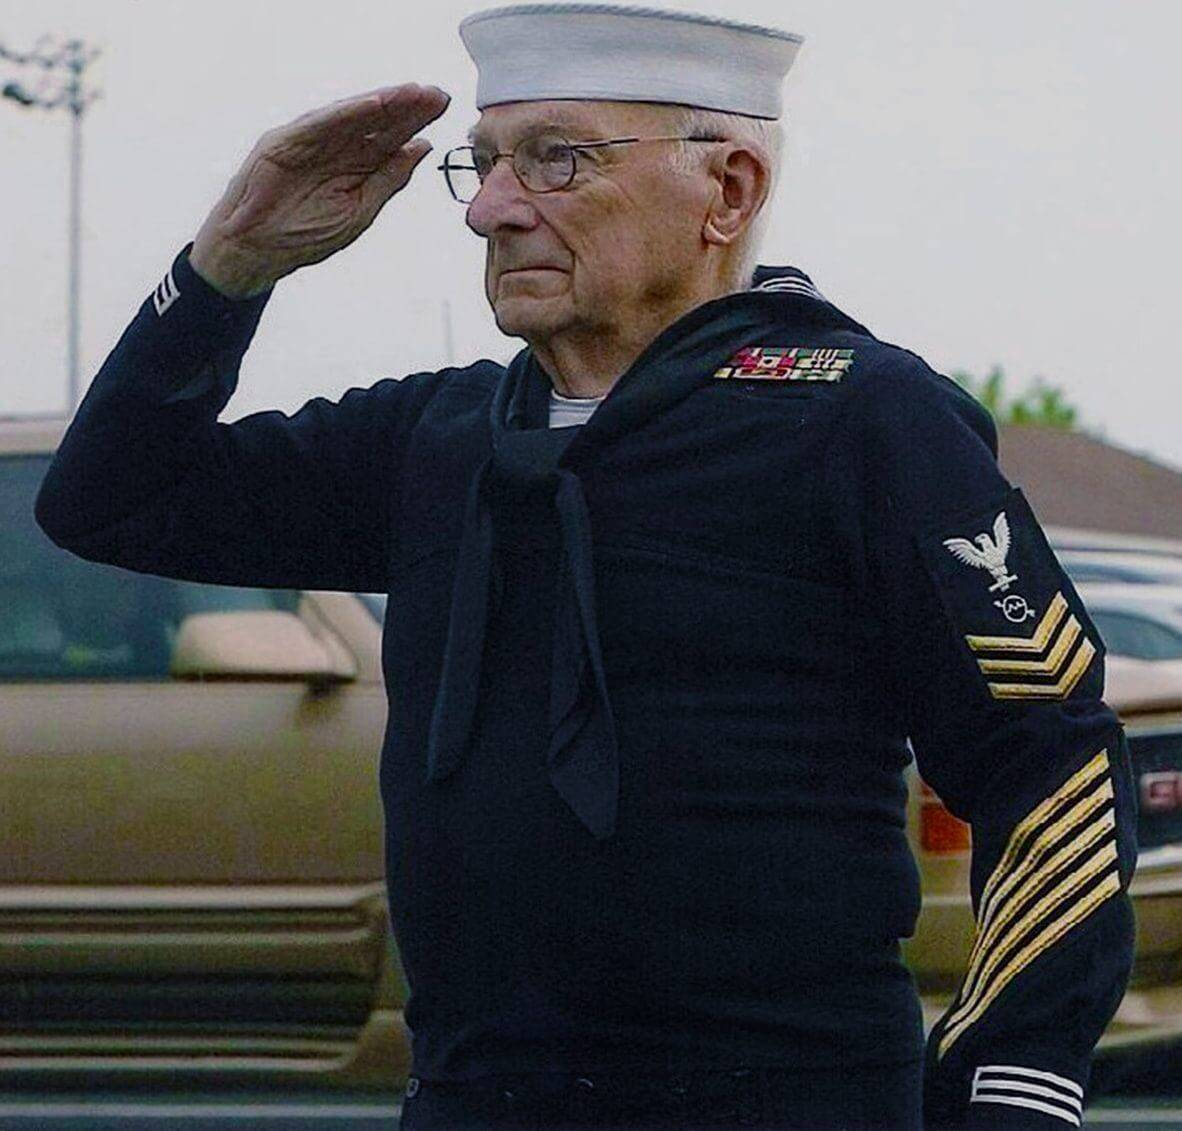 Elderly vet in naval uniform, saluting.